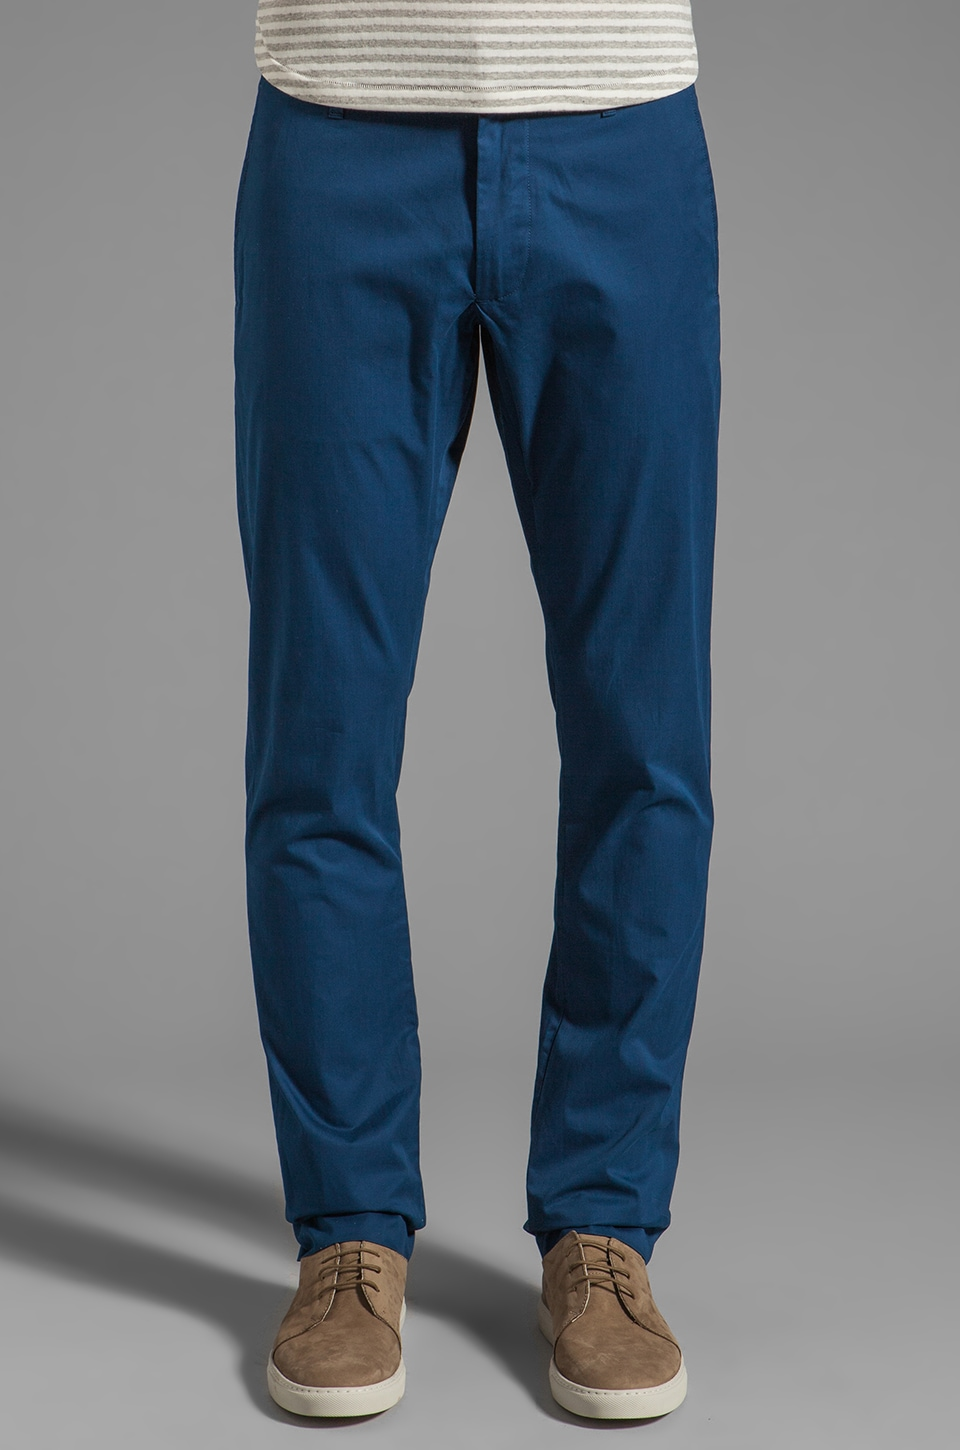 Marc by Marc Jacobs Cambridge Cotton Pant in Estate Blue